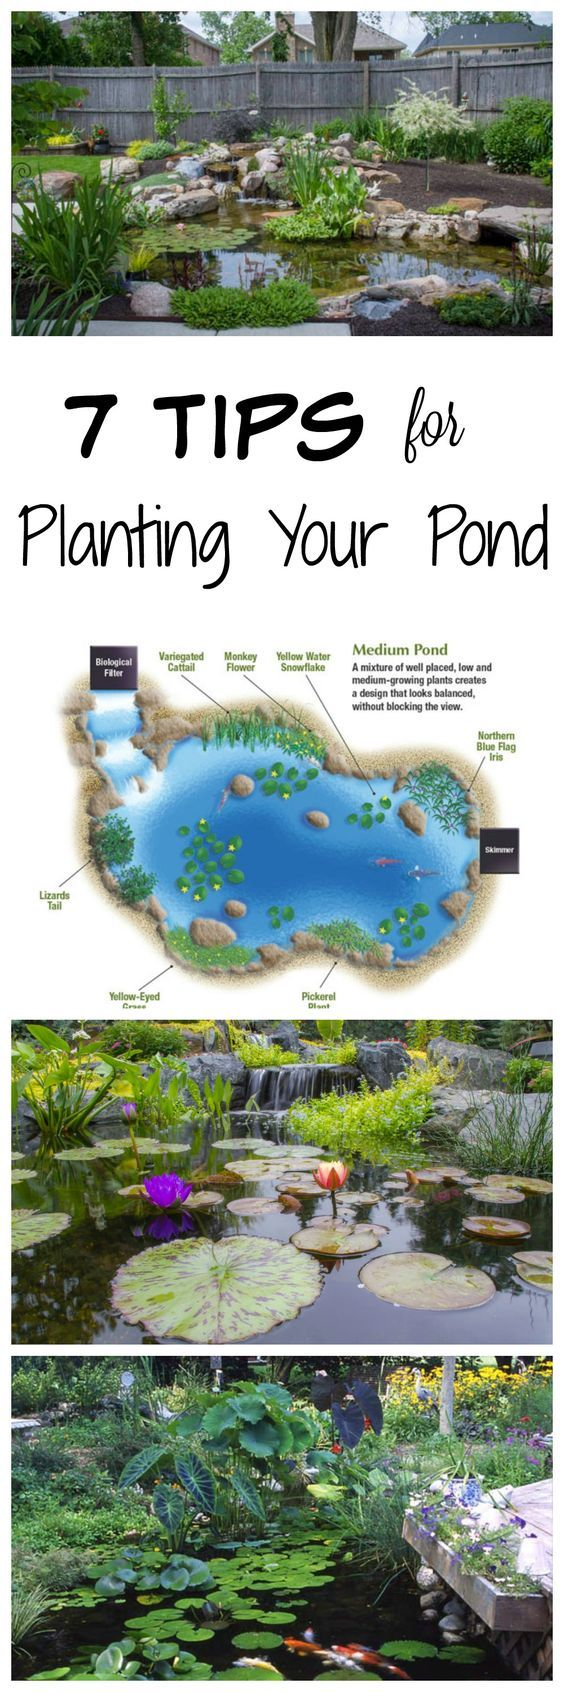 Best 25 fish ponds ideas on pinterest pond kits koi for Pond fishing tips